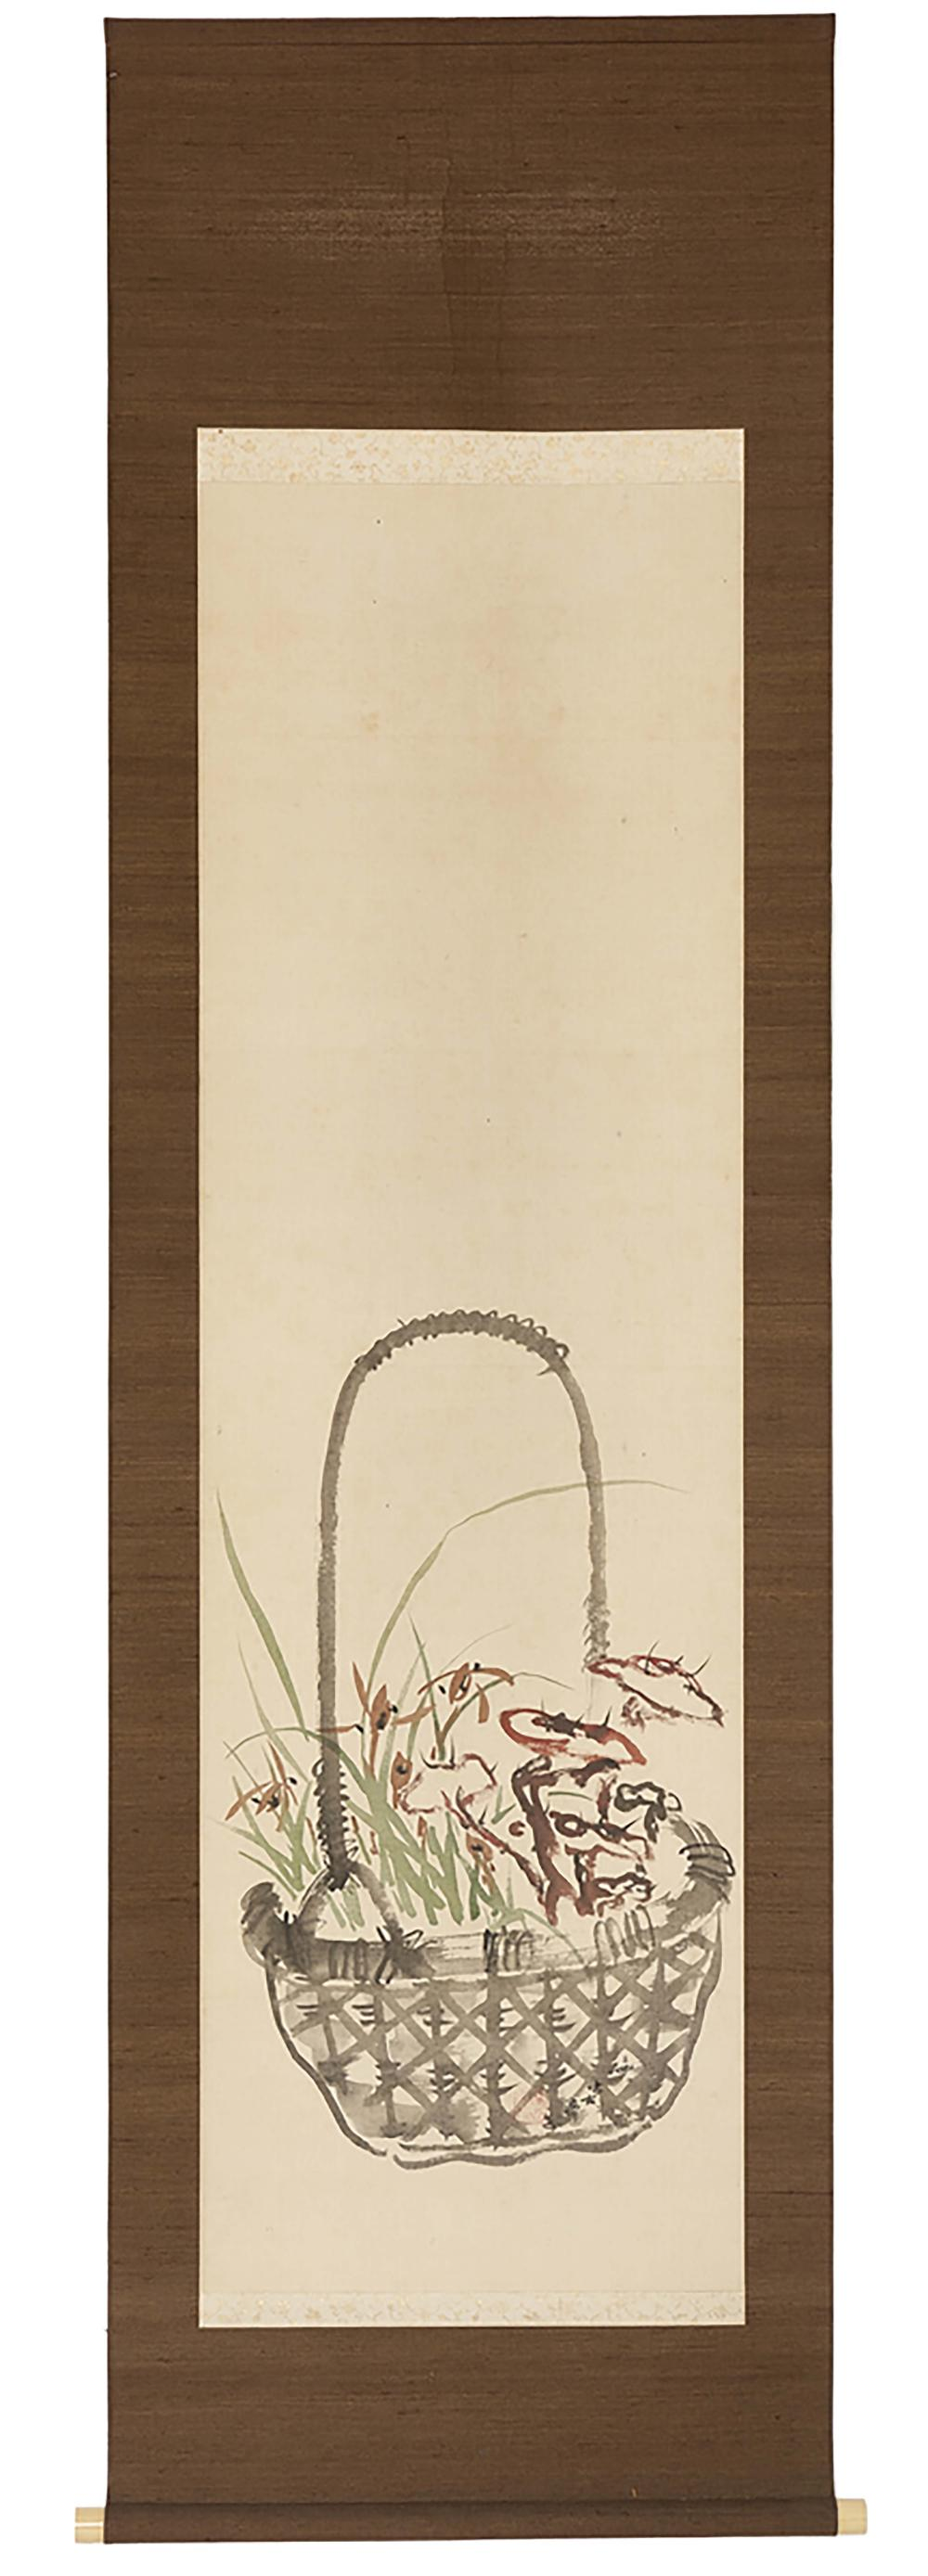 Hanging scroll (kakejiku) with a tinted painting depicting a flower basket